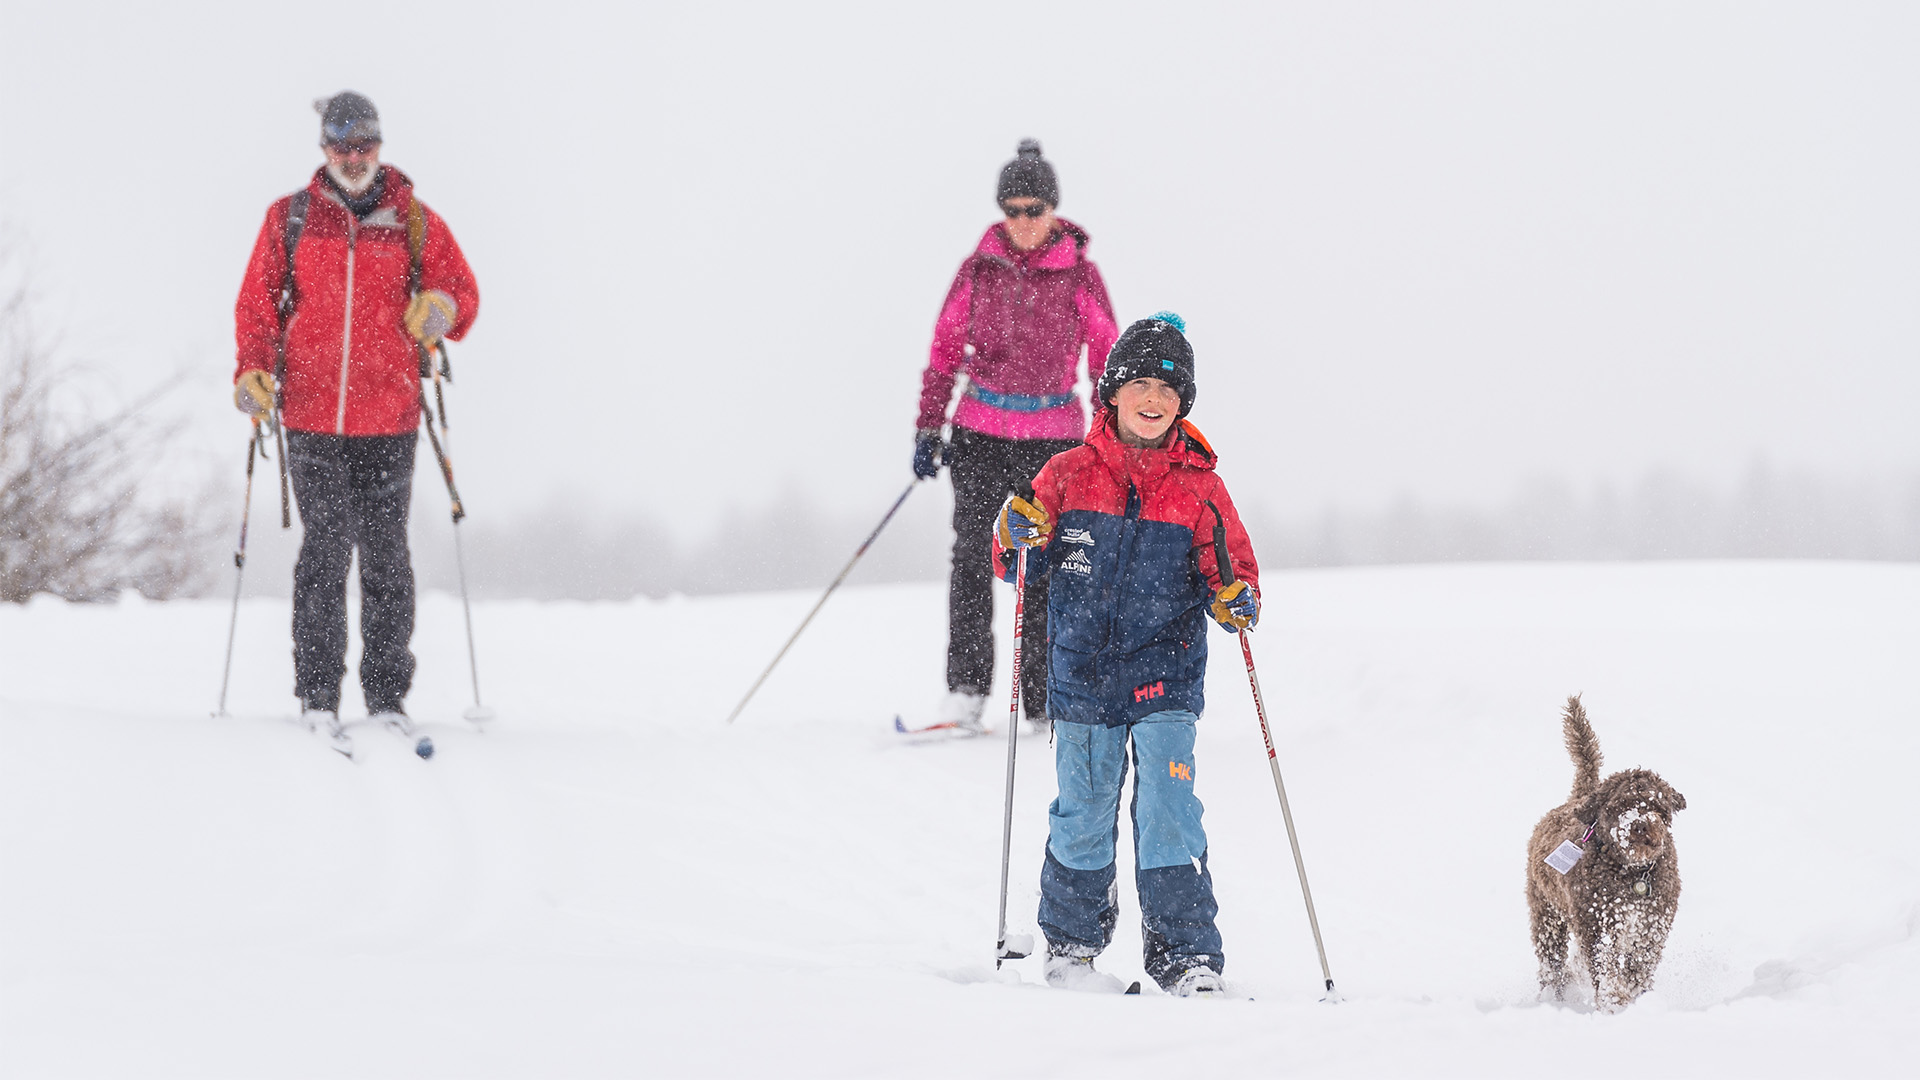 Family Nordic Skis Together in Crested Butte